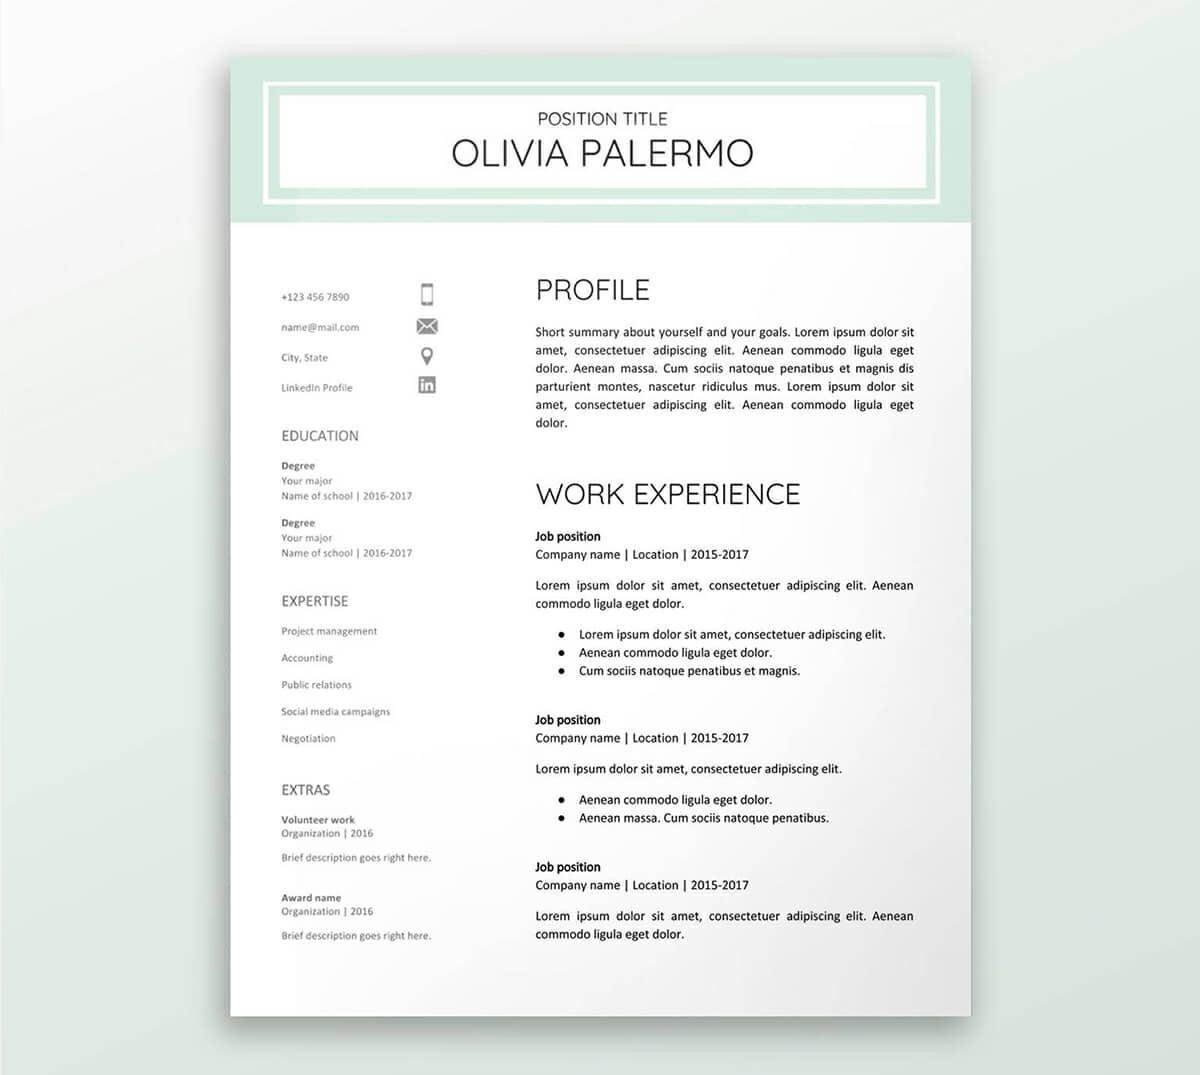 Google Docs Letter Template Google Docs Resume Templates 10 Free formats to Download